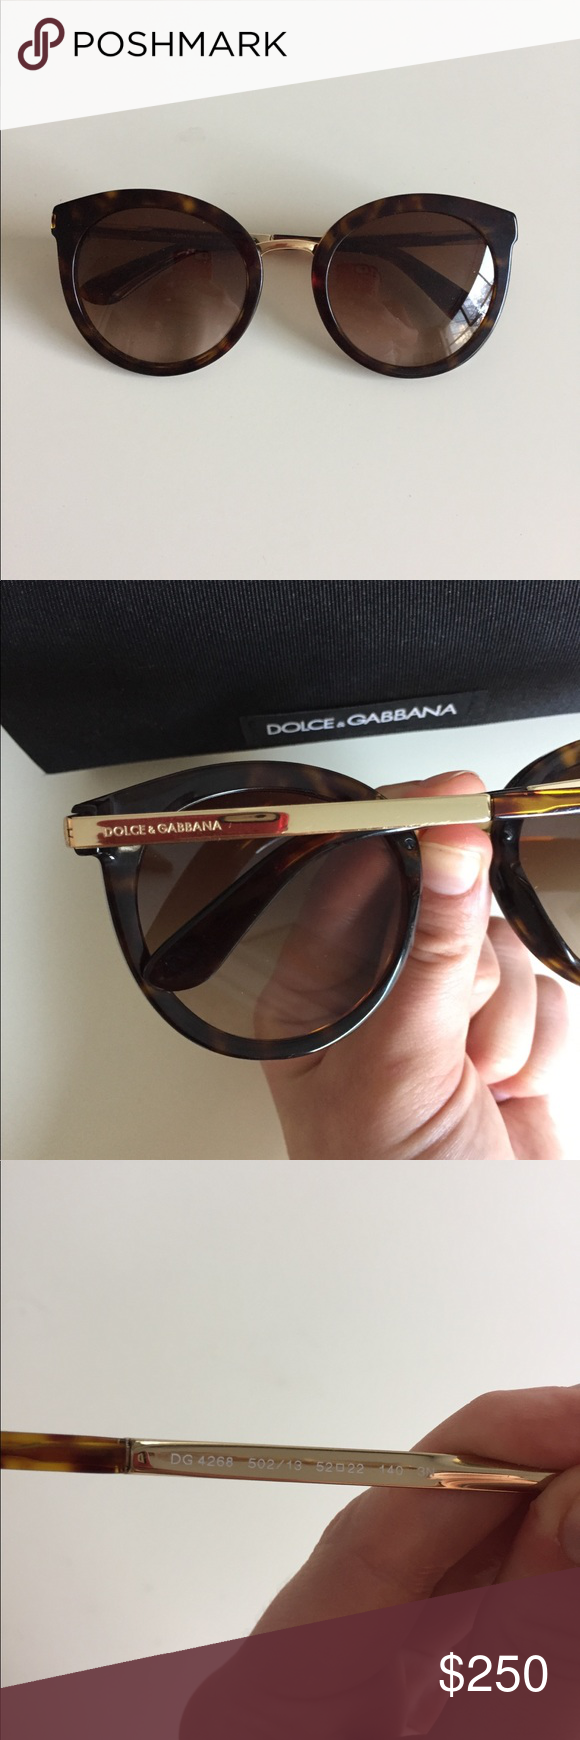 5646fe941ac2 Dolce   Gabbana Sunglasses DG 4268 NEW WITH CASE! Color 502 13 - Elegant  rounded sunglasses with Havana acetate frontal and gold metal temples with  D G ...